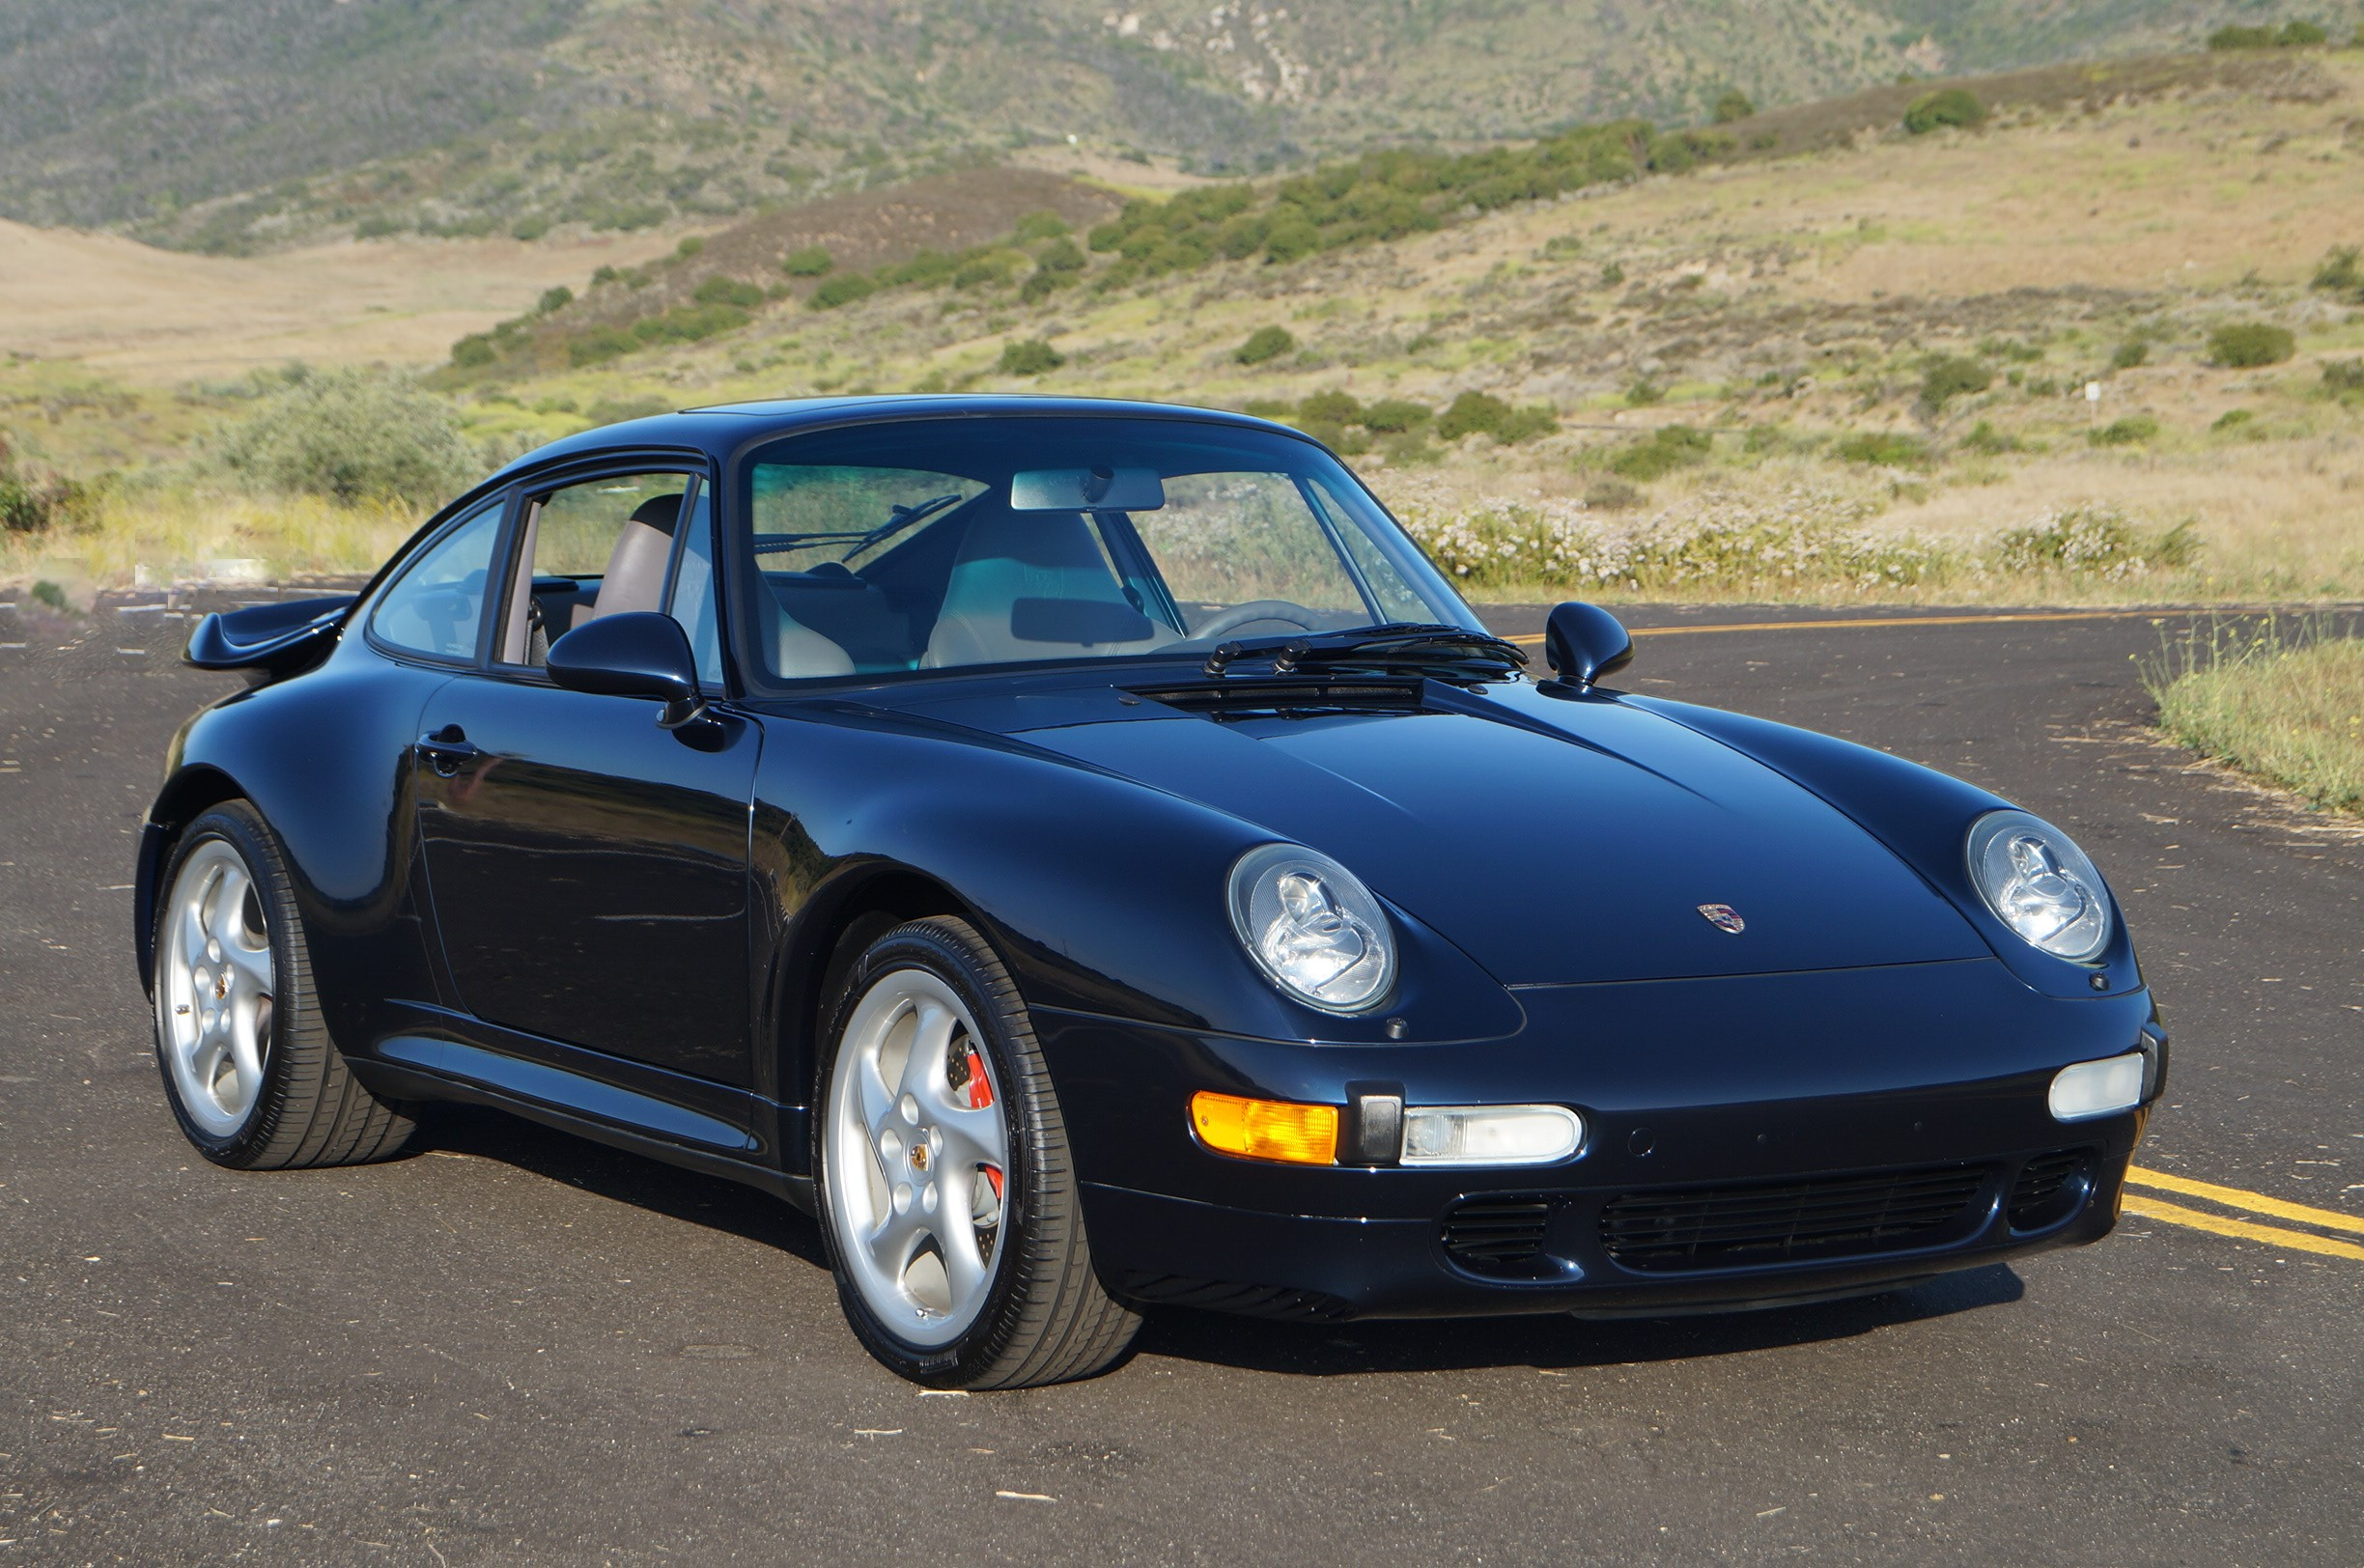 Black 1997 Porsche 911 Turbo - Sold at Johnston Motorsports